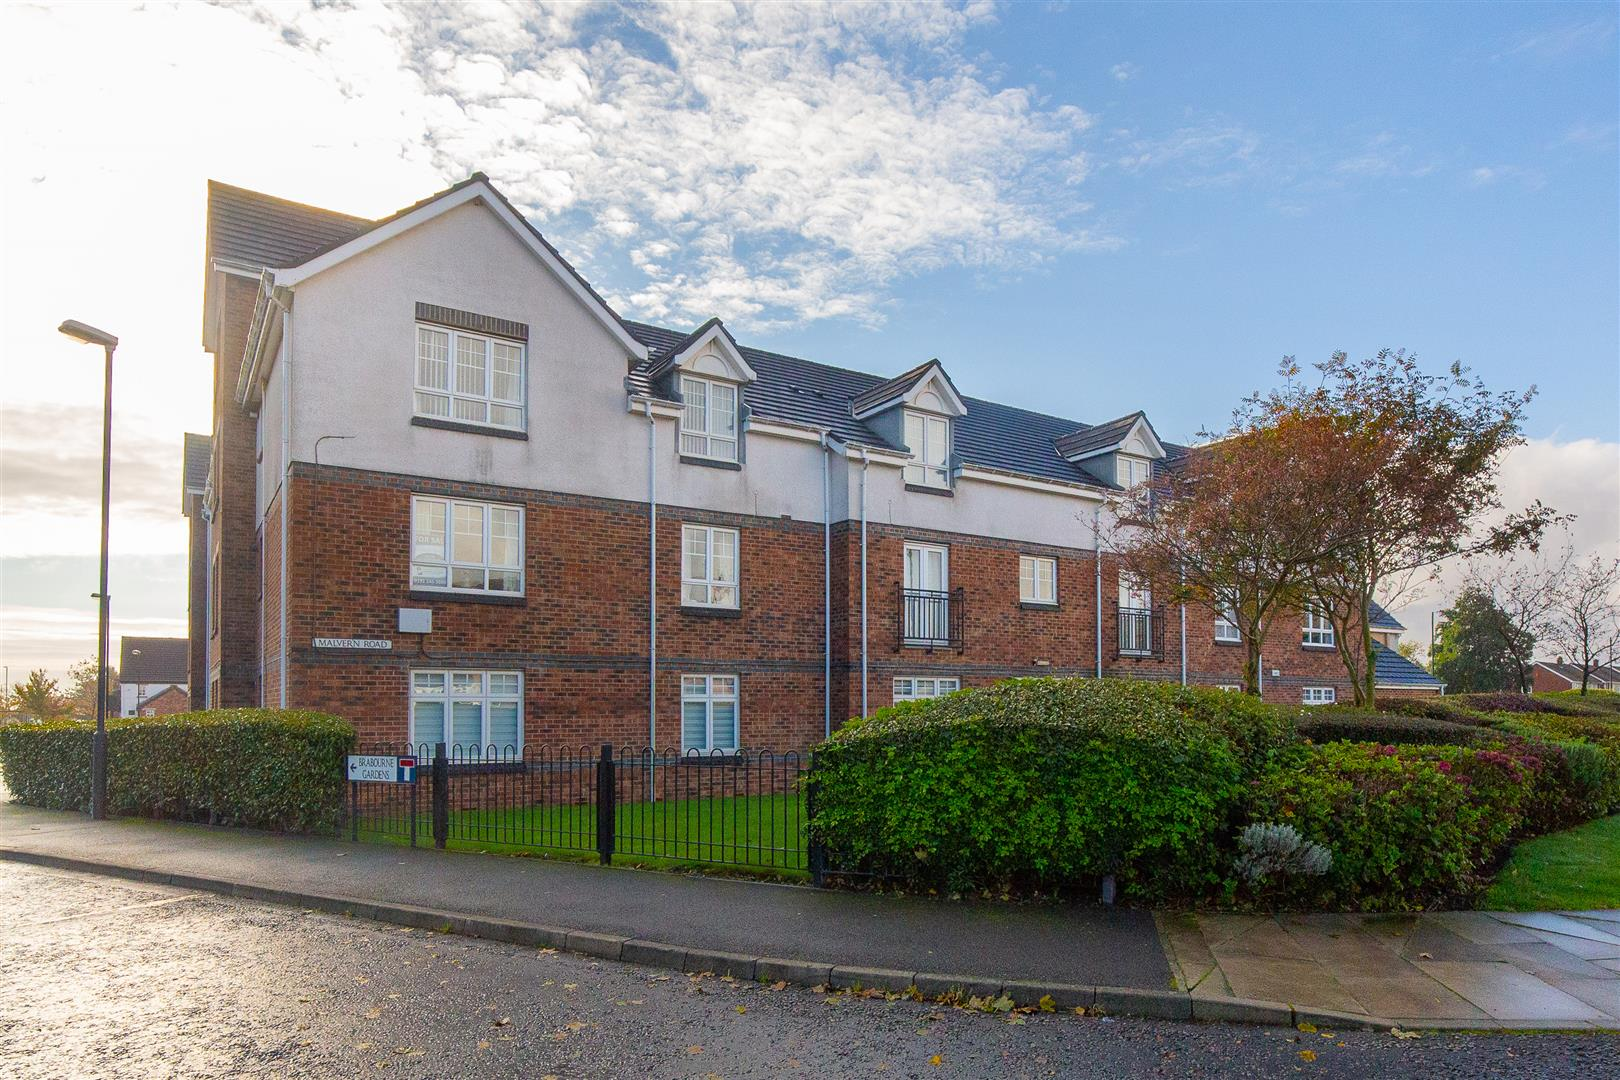 2 bed apartment for sale in North Shields, NE29 9EF 0